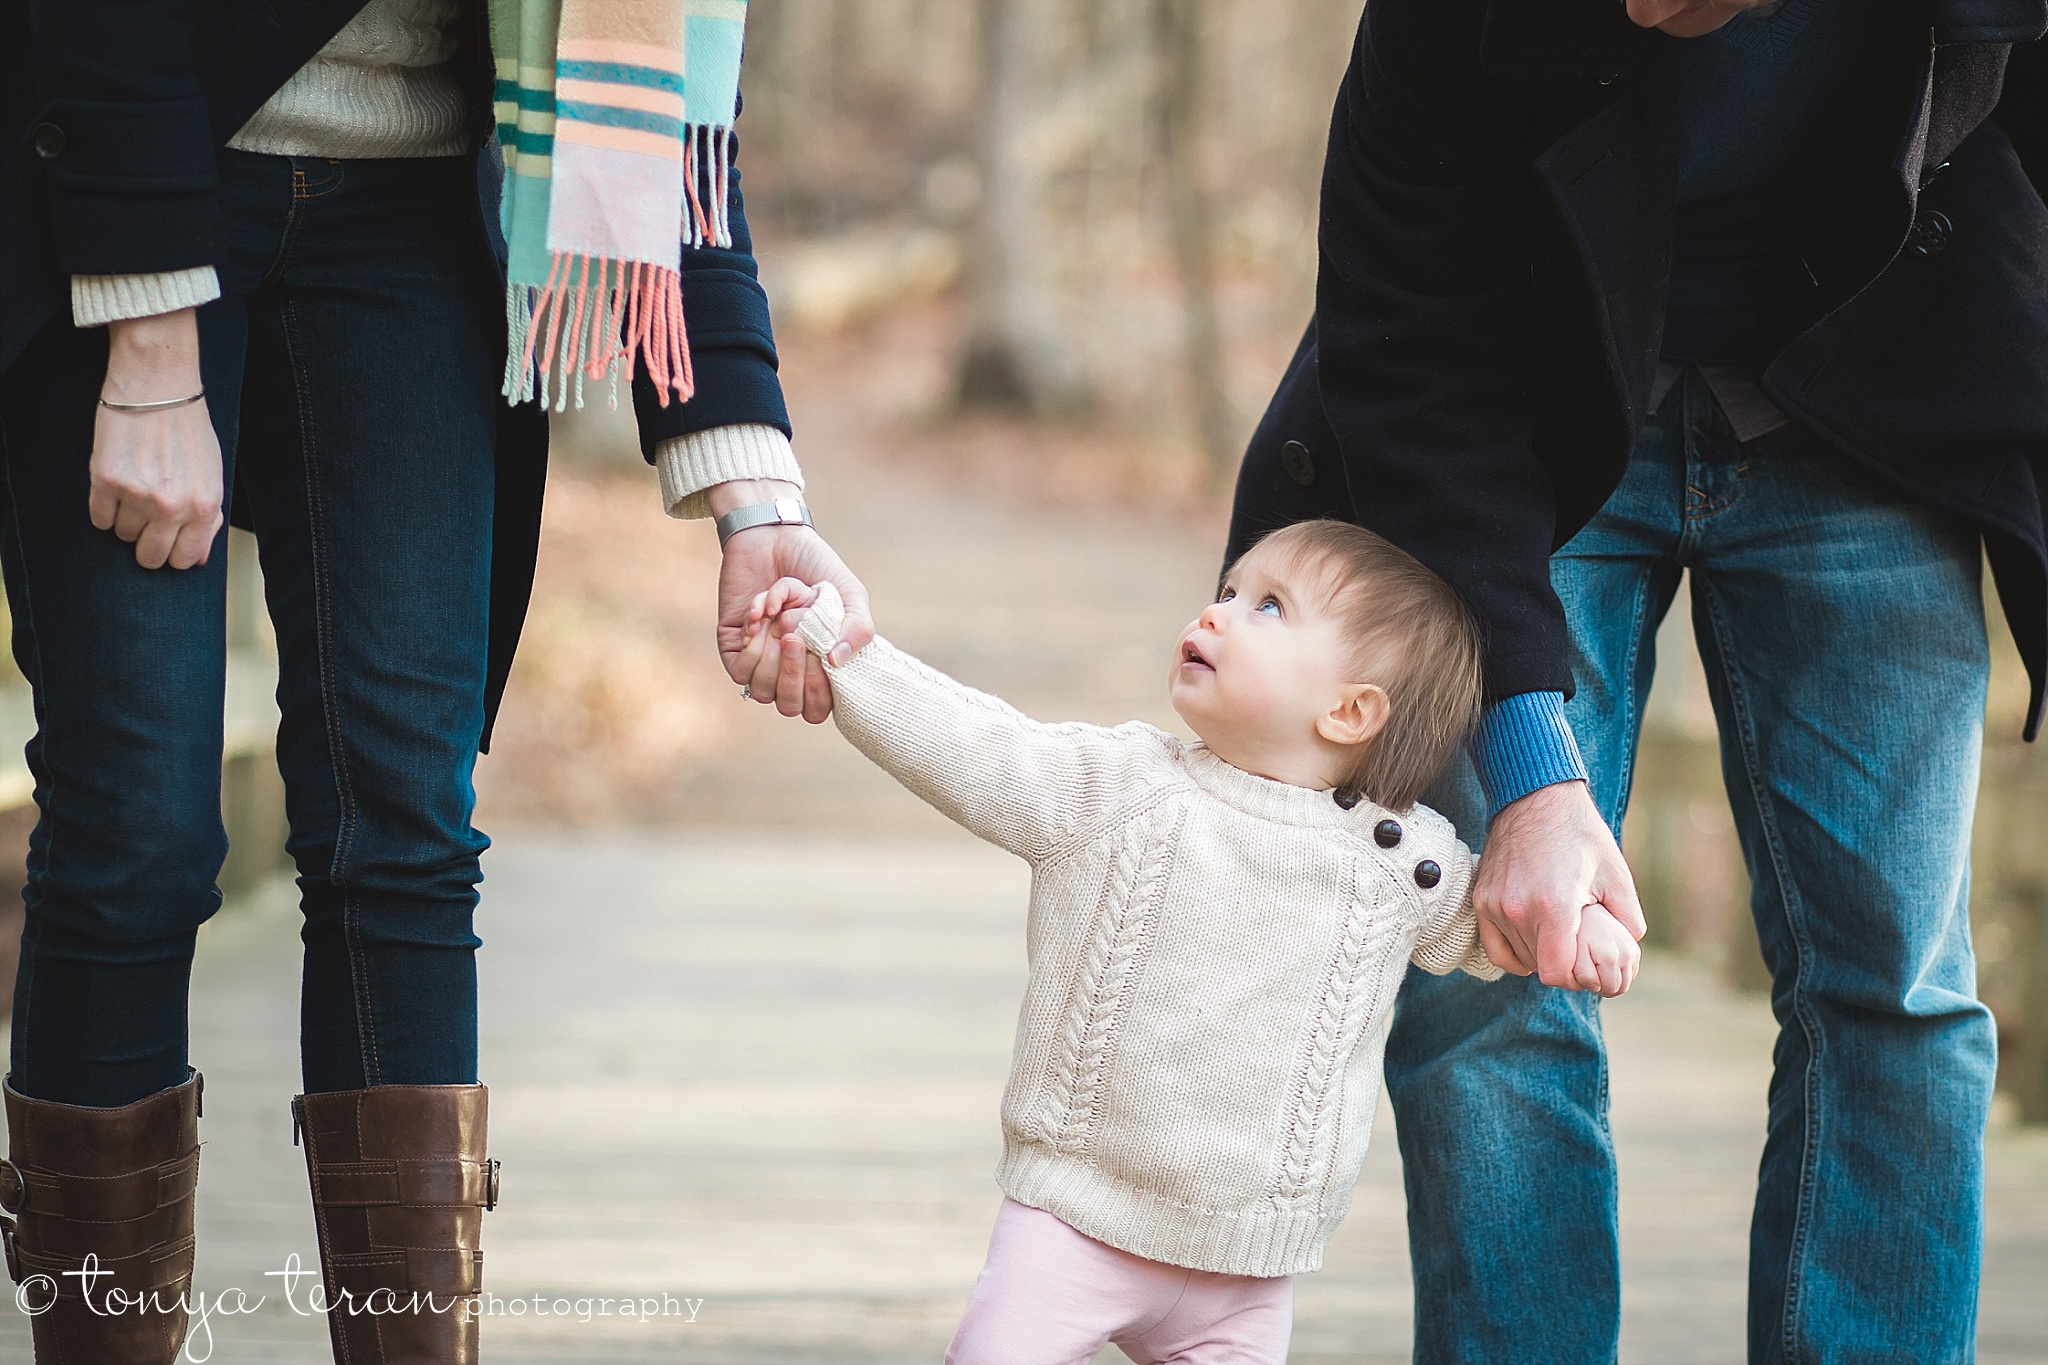 Outdoor Fall Family Photo Session | Tonya Teran Photography, Rockville, MD Newborn, Baby, and Family Photographer